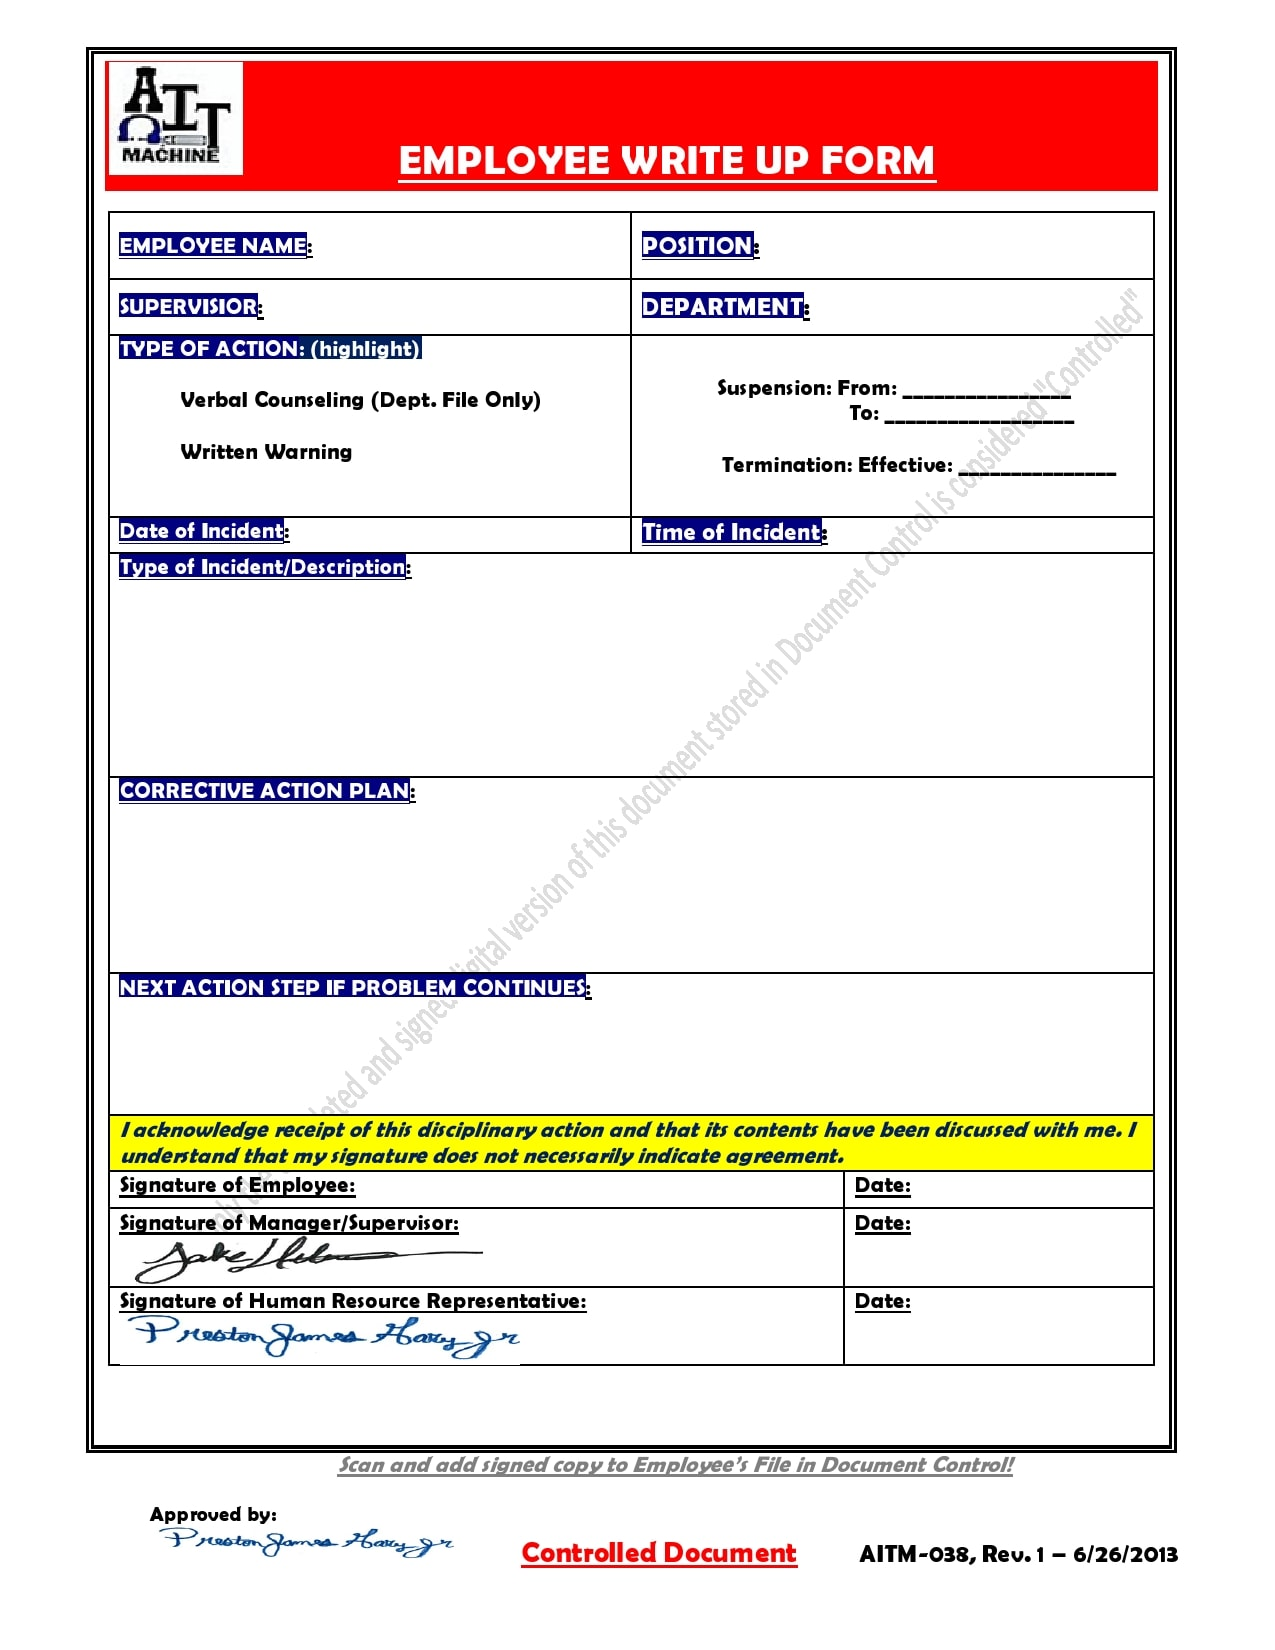 employee write up form 04